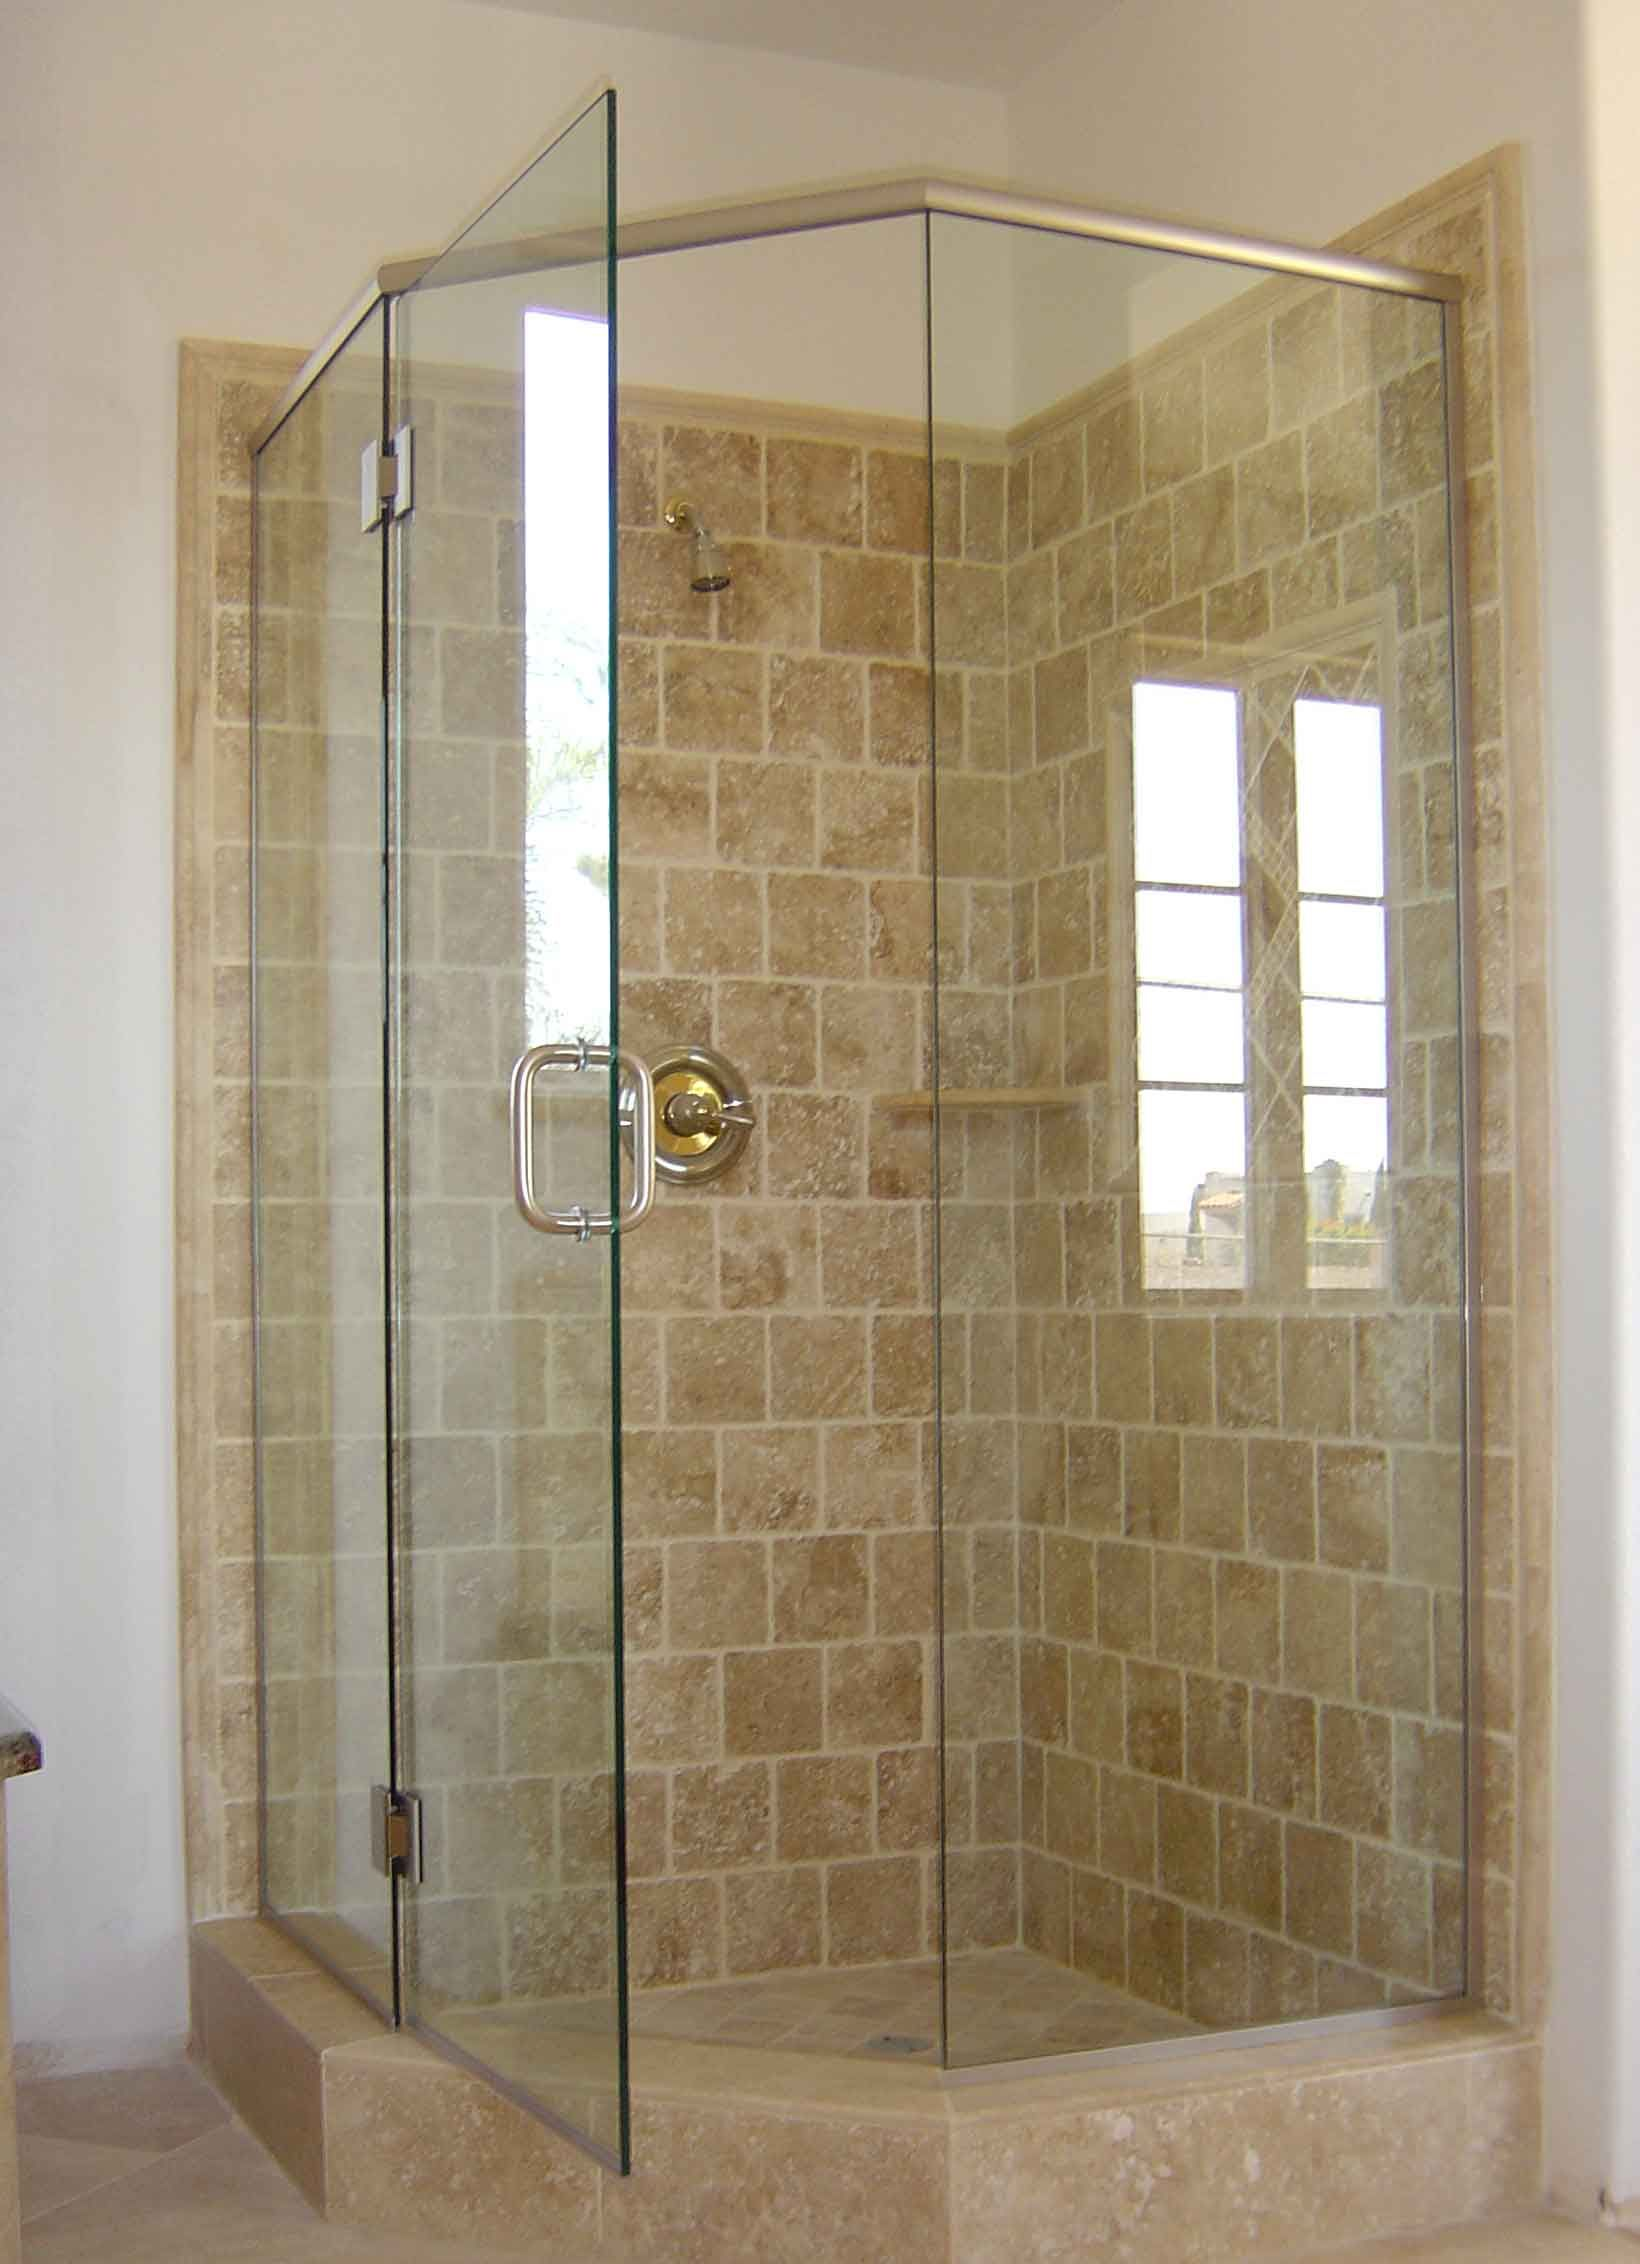 Upstairs bathroom corner shower pinteres Small shower ideas